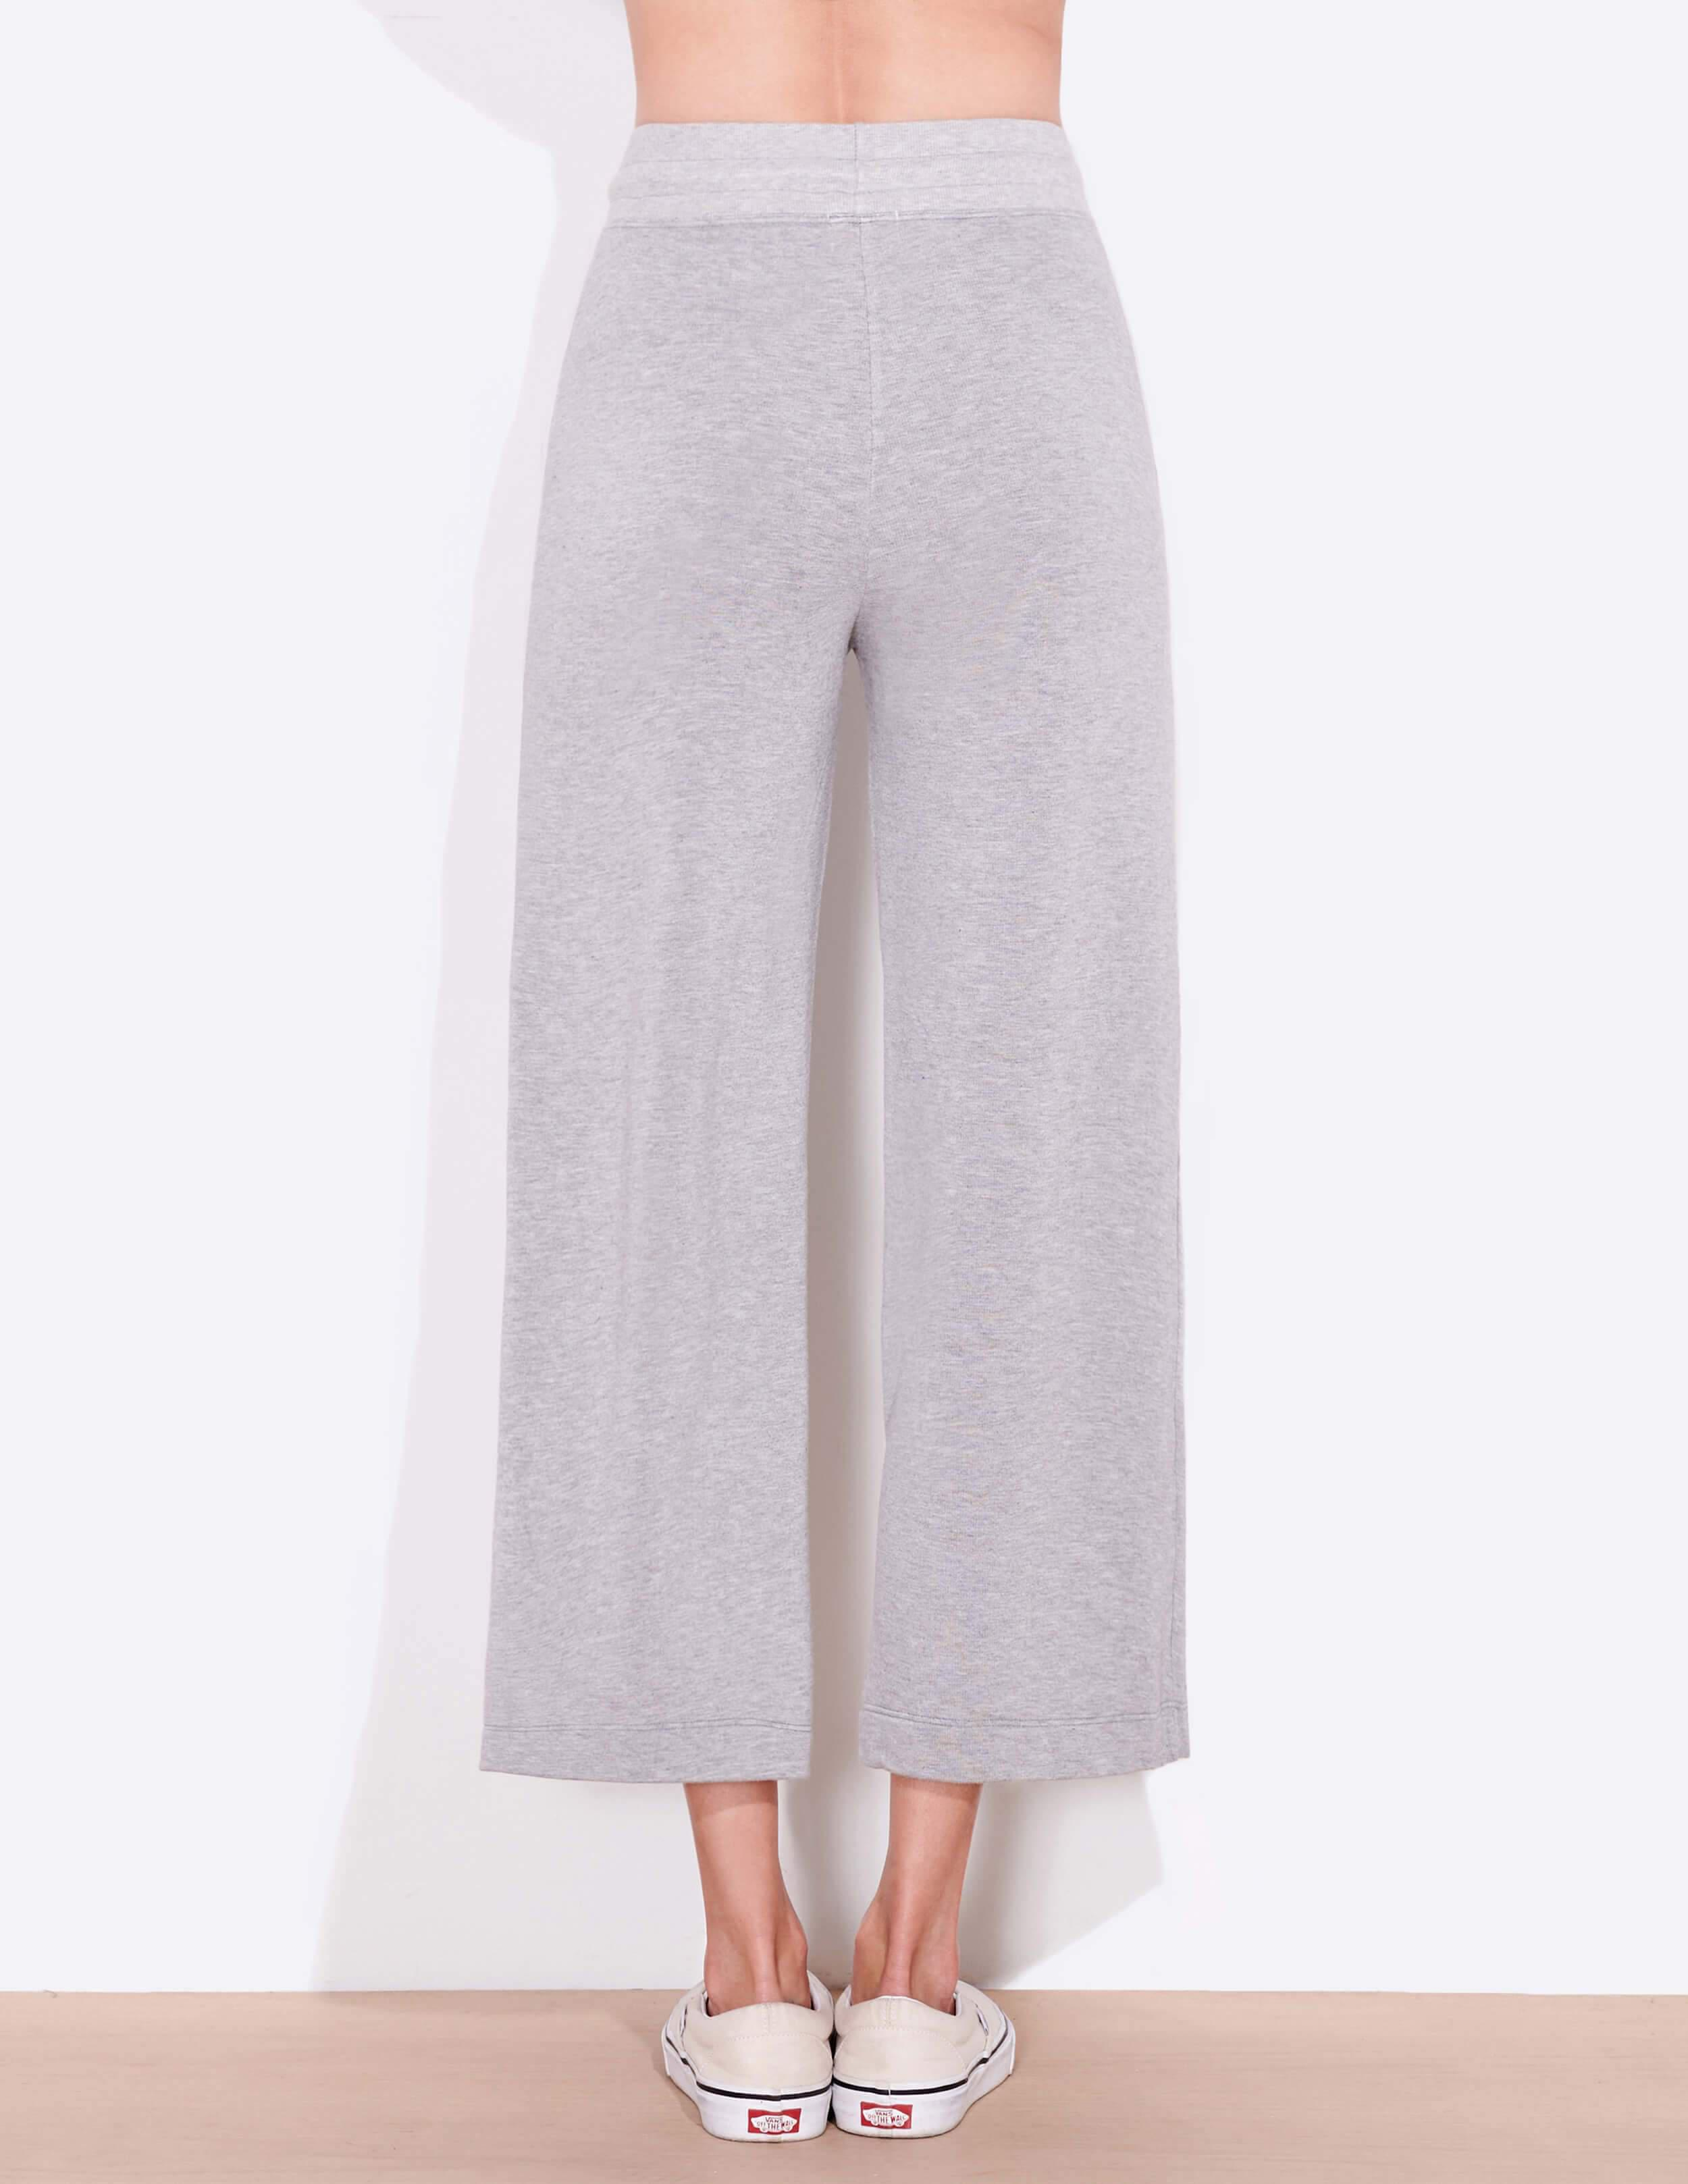 Cropped Flare Sweatpants 2